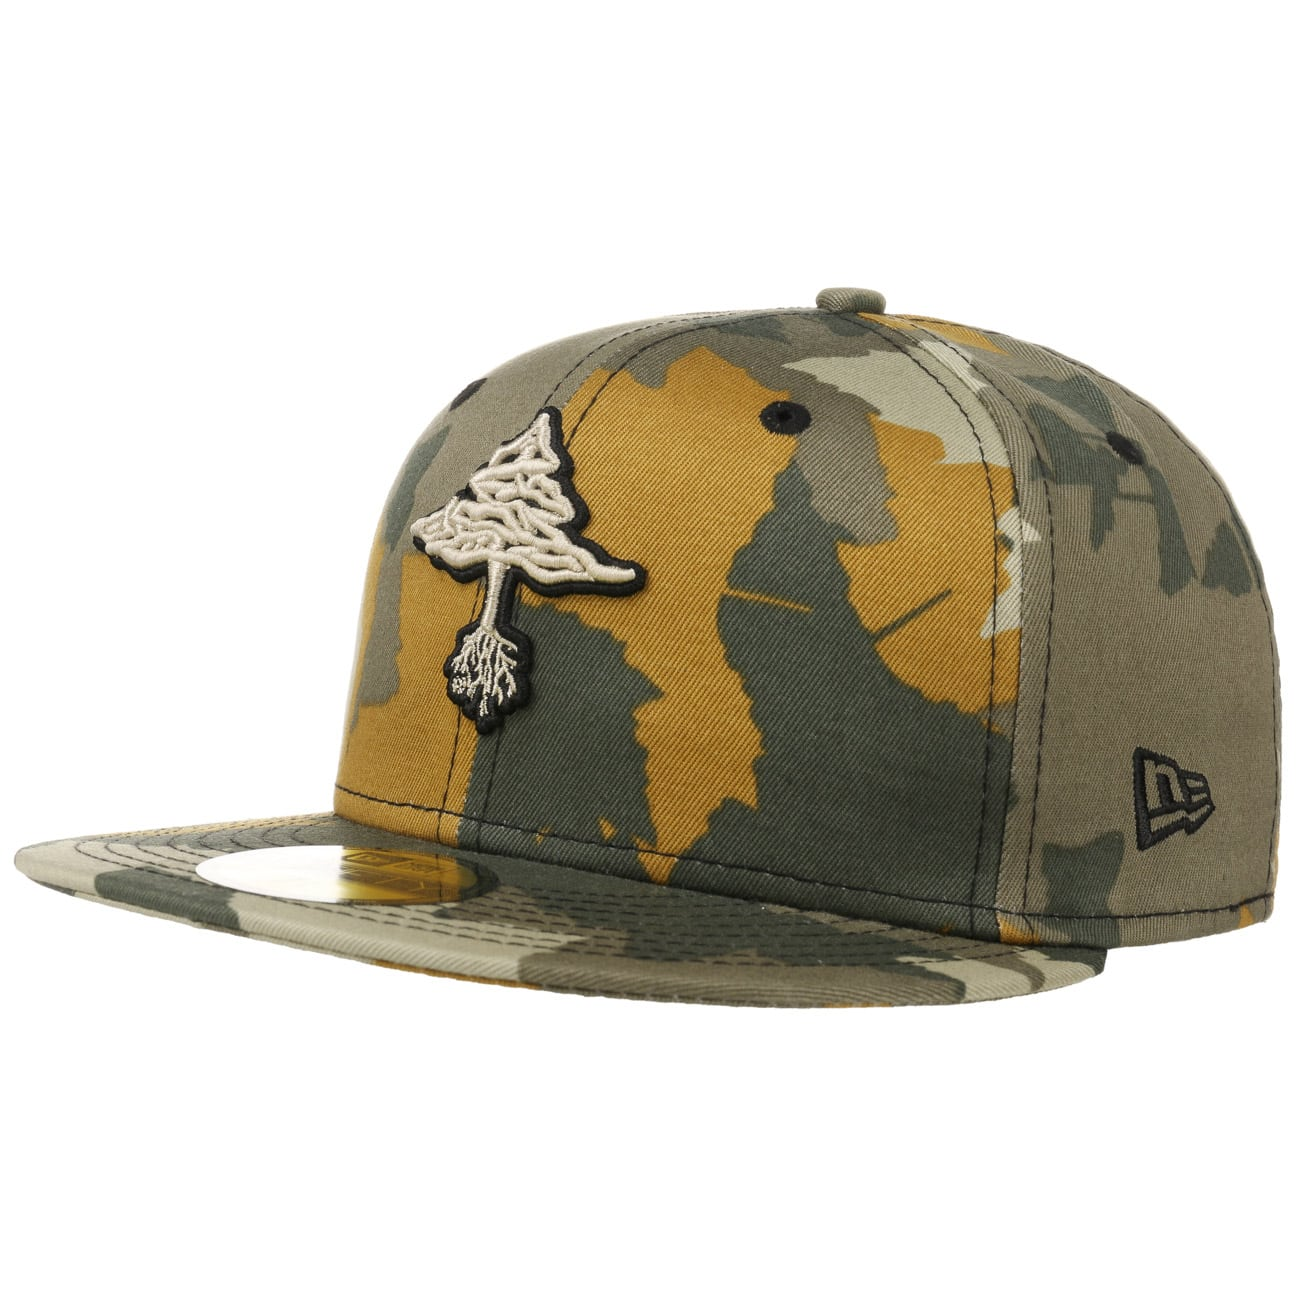 59fifty lrg camouflage cap by new era eur 39 95 hats. Black Bedroom Furniture Sets. Home Design Ideas